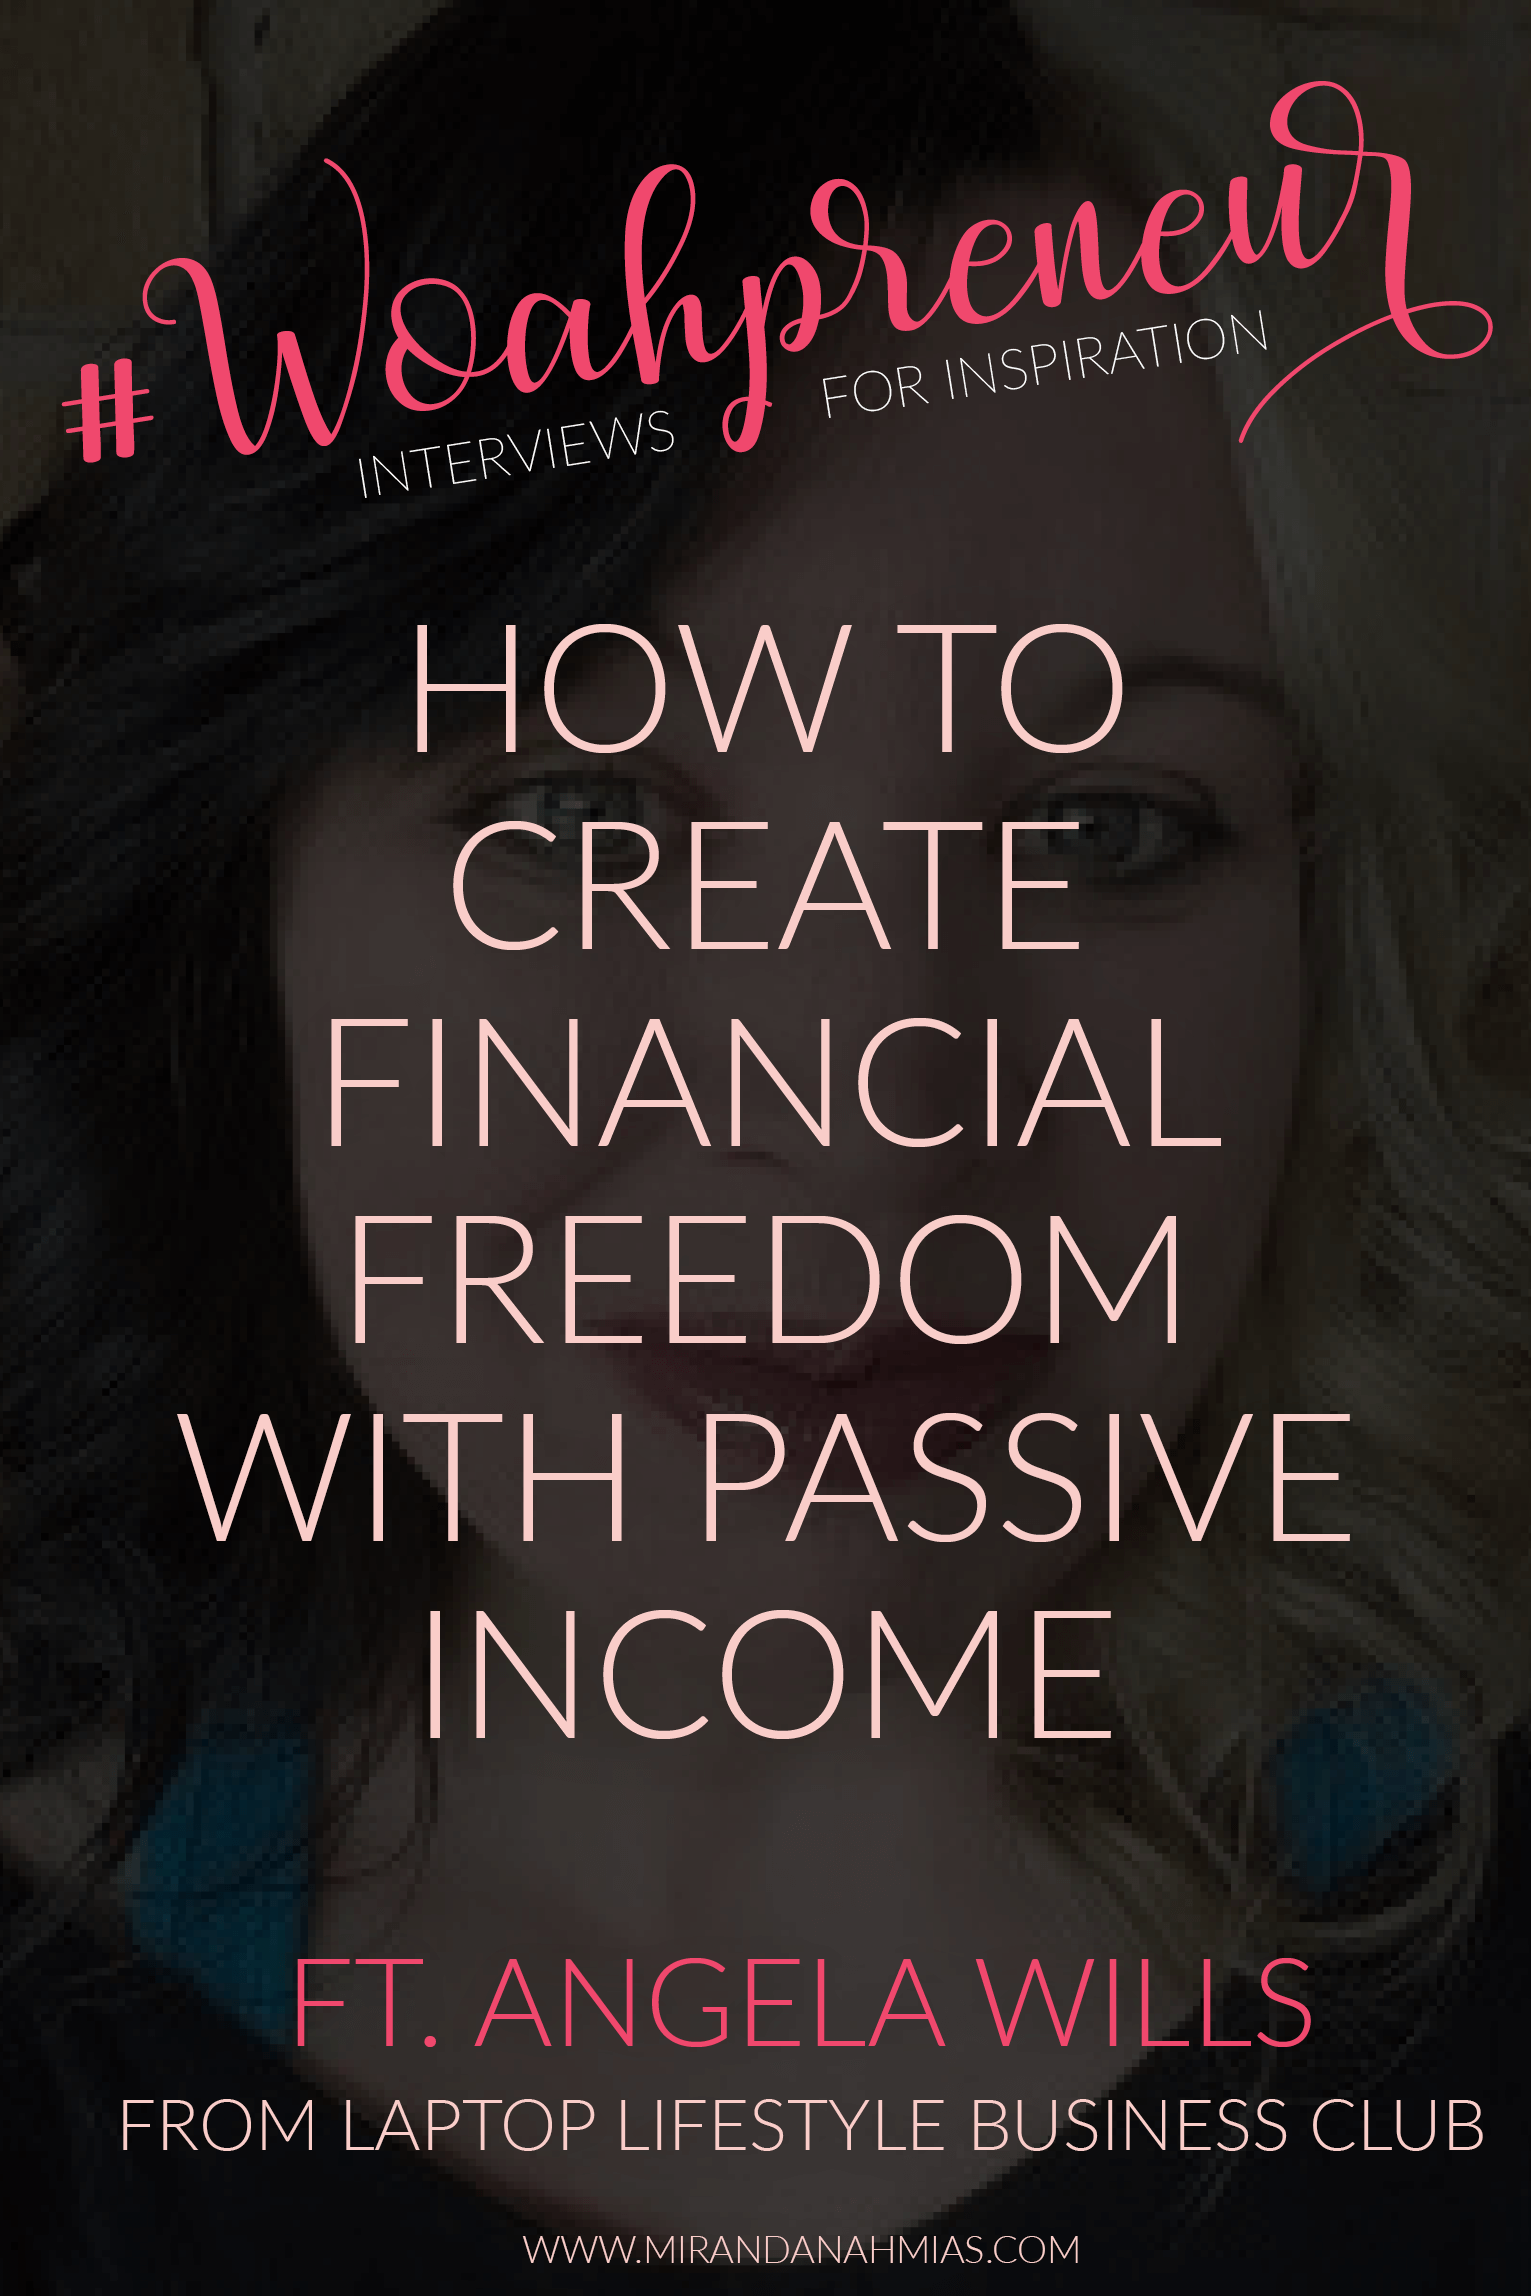 Looking for financial freedom? On this episode of Woahpreneur Podcast, Angela Wills and I discuss how to use passive and active income to create financial freedom | Miranda Nahmias & Co. Systematic Marketing for Female Service Providers #Woahpreneur Podcast